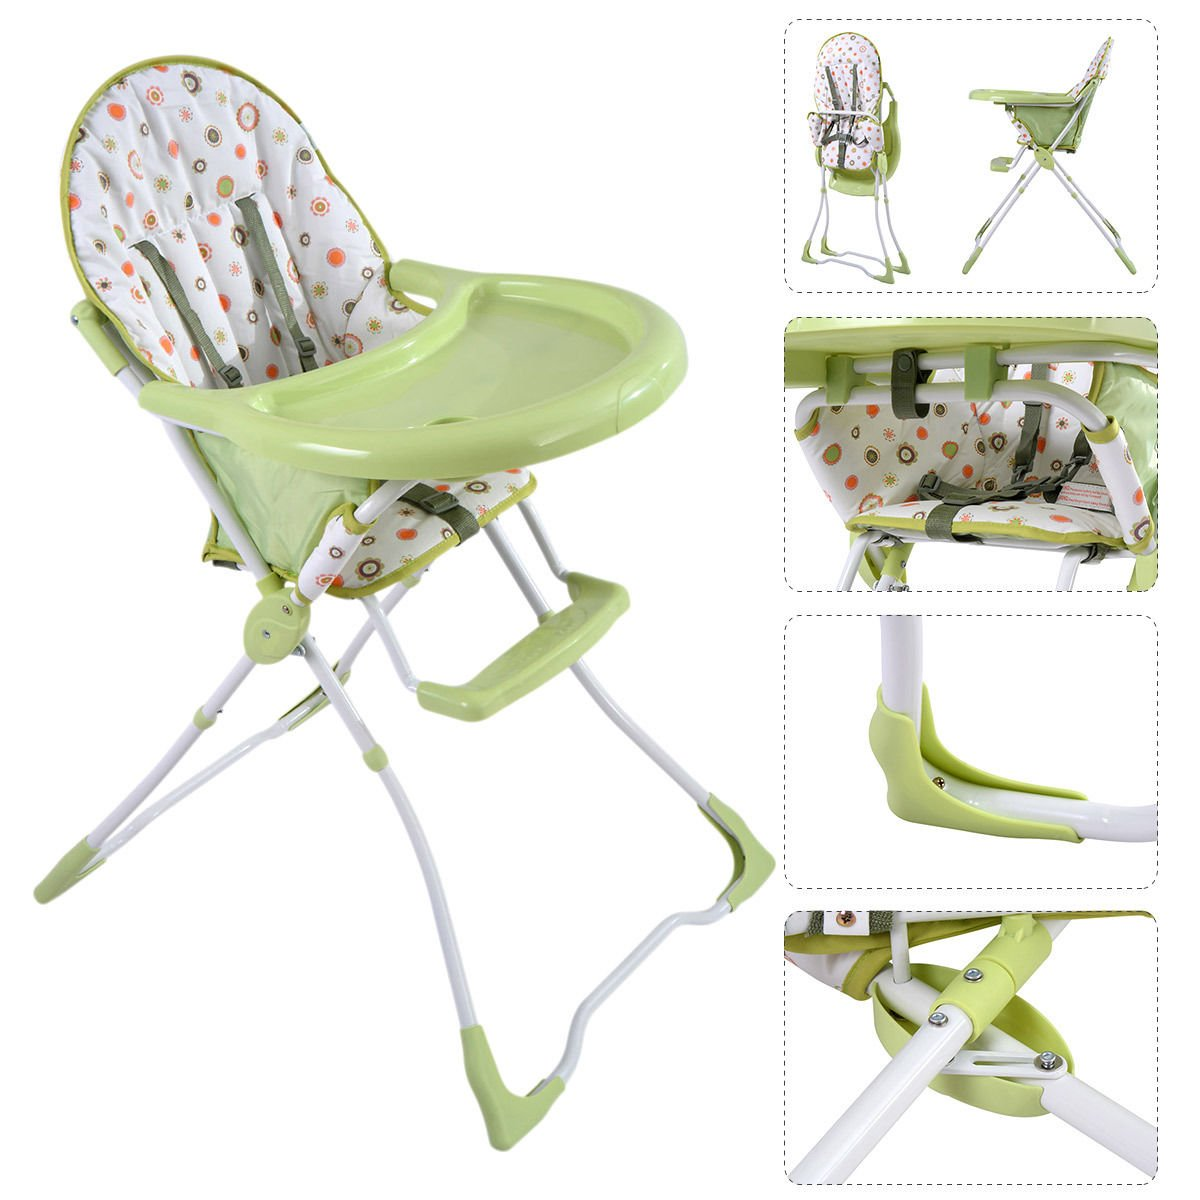 K&A Company Adjustable Baby Toddler Feeding Booster Chair Seat High Folding Infant Portable Highchair in Green